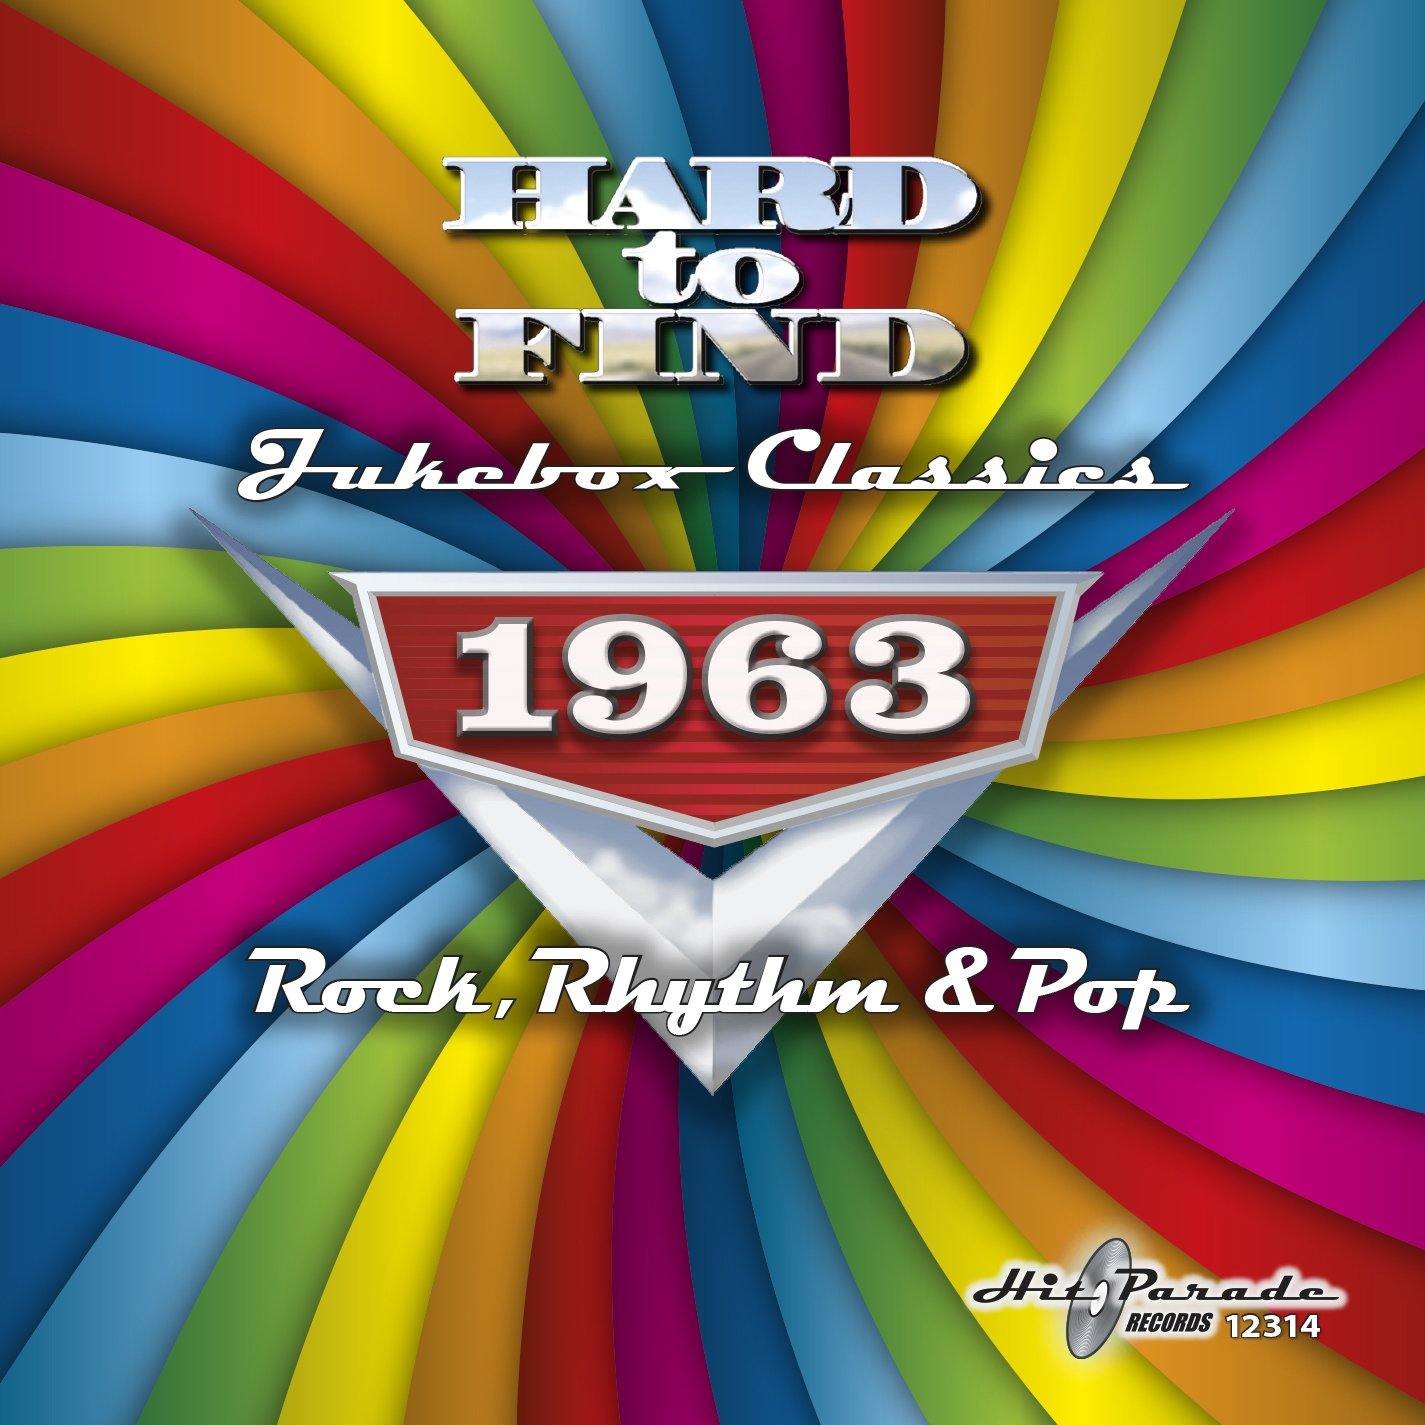 Hard To Find Jukebox Classics 1963 - Rock, Rhythm & Pop by Hit Parade